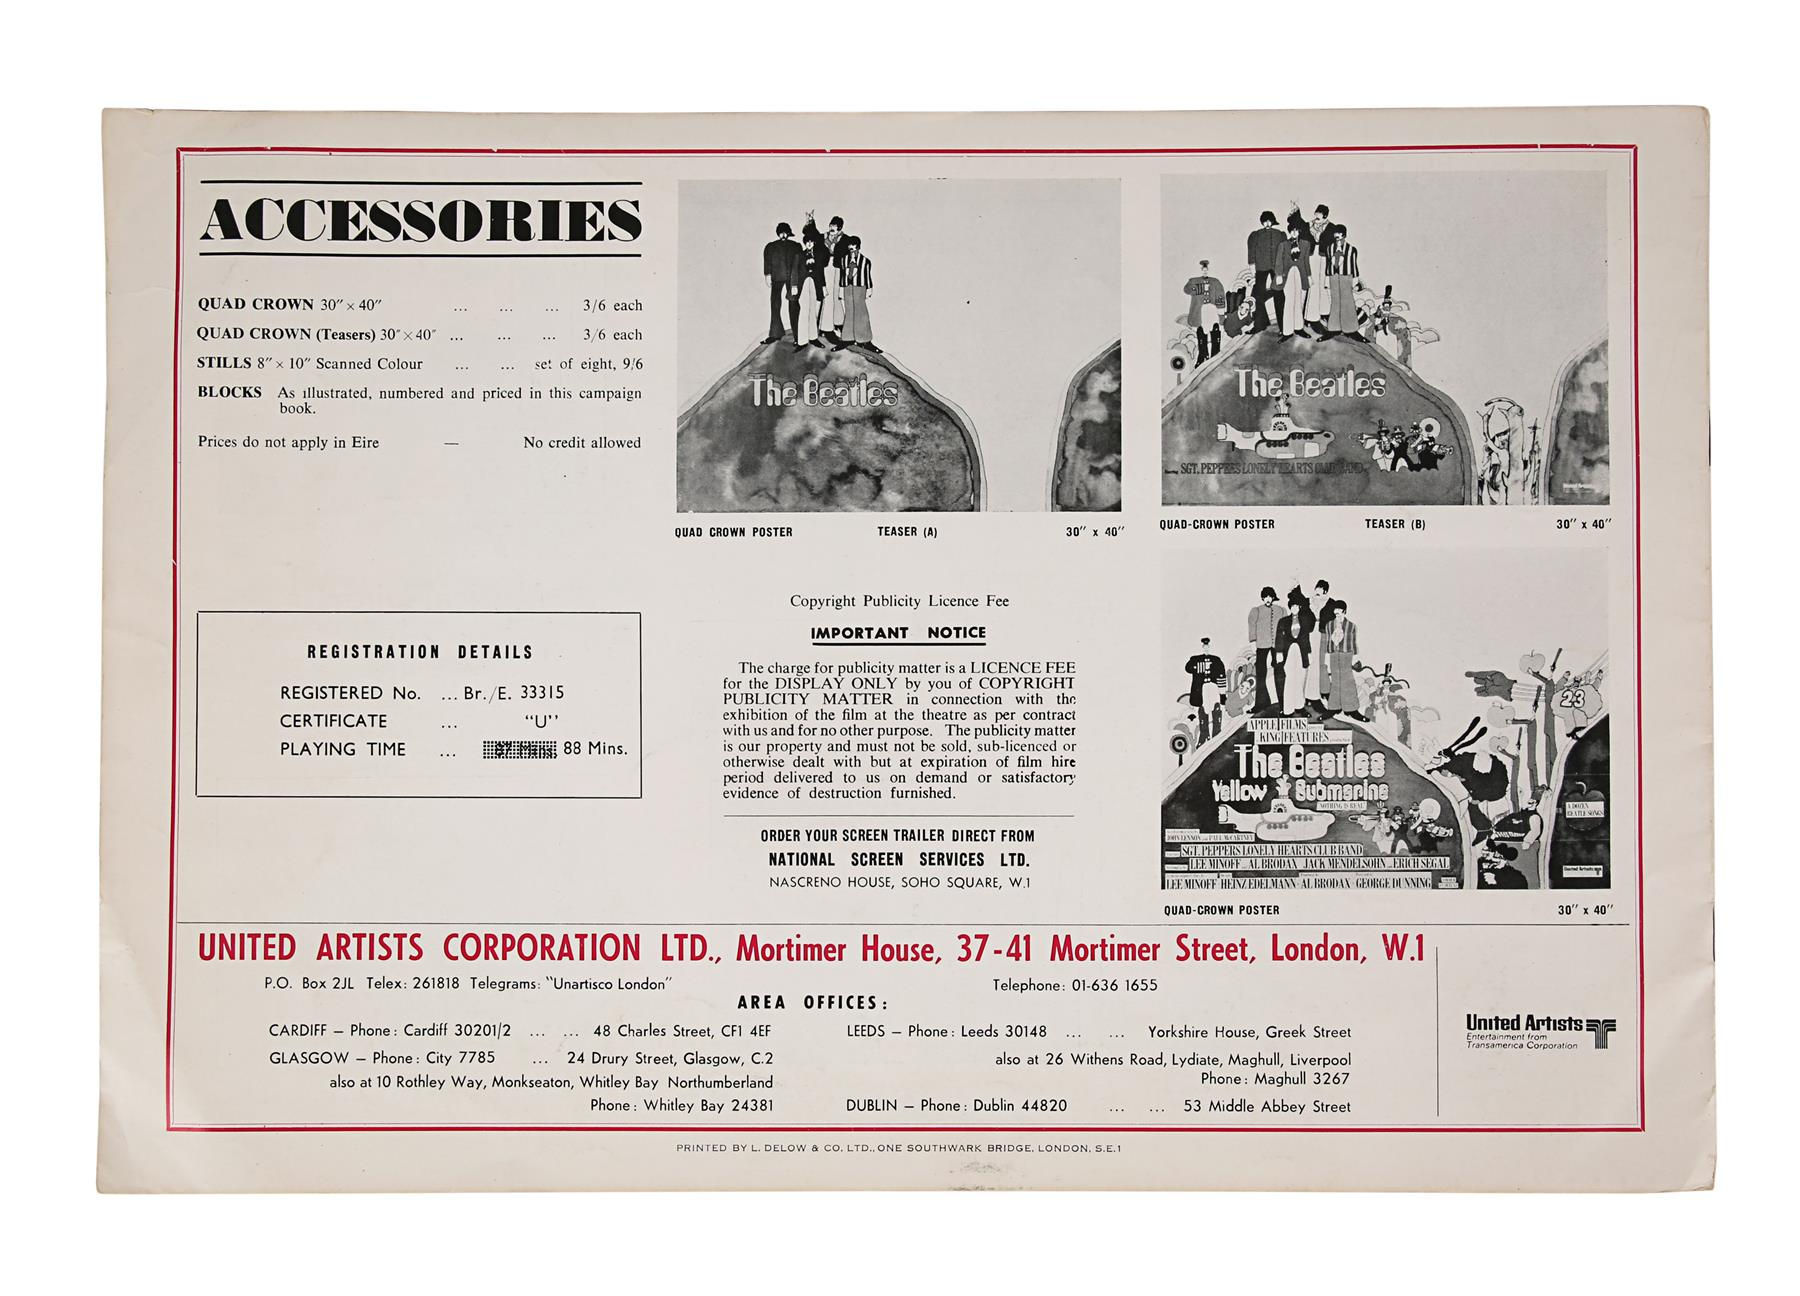 YELLOW SUBMARINE (1968) - British Exhibitors' Campaign Book and Two Advertising Supplements, 1968 - Image 7 of 7